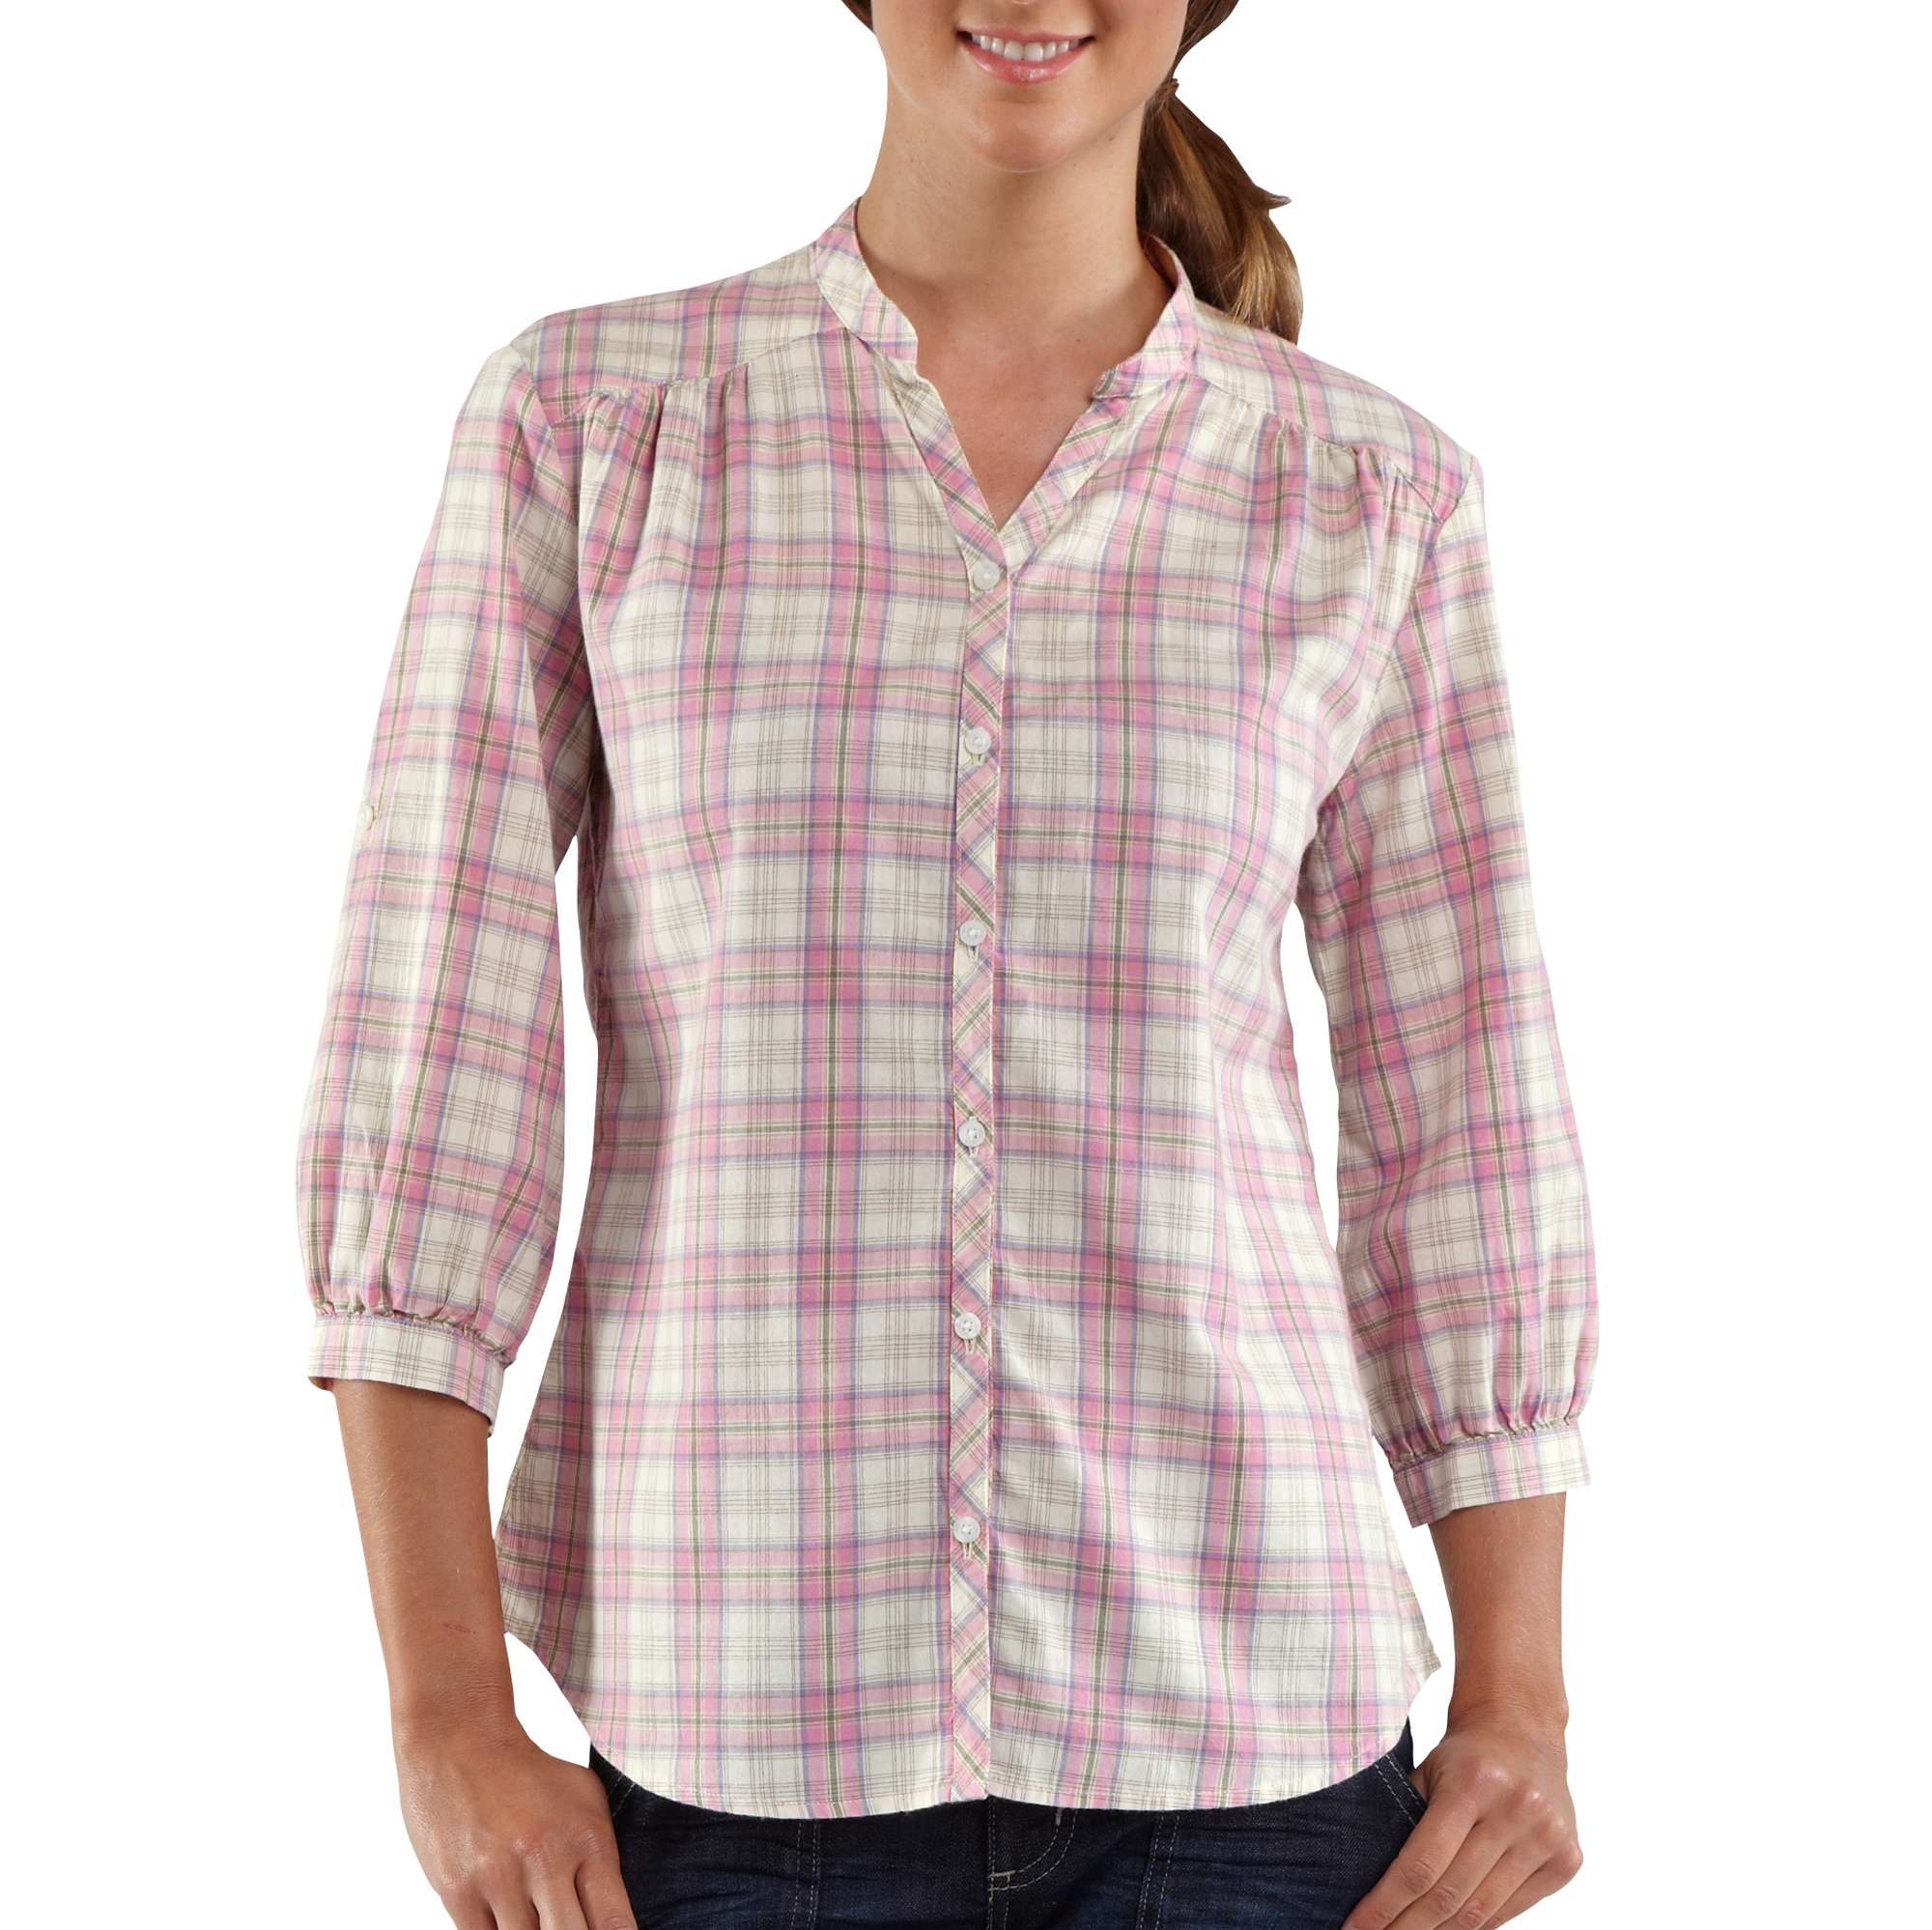 Carhartt womens three quarter sleeve plaid button down for Plaid button down shirts for women